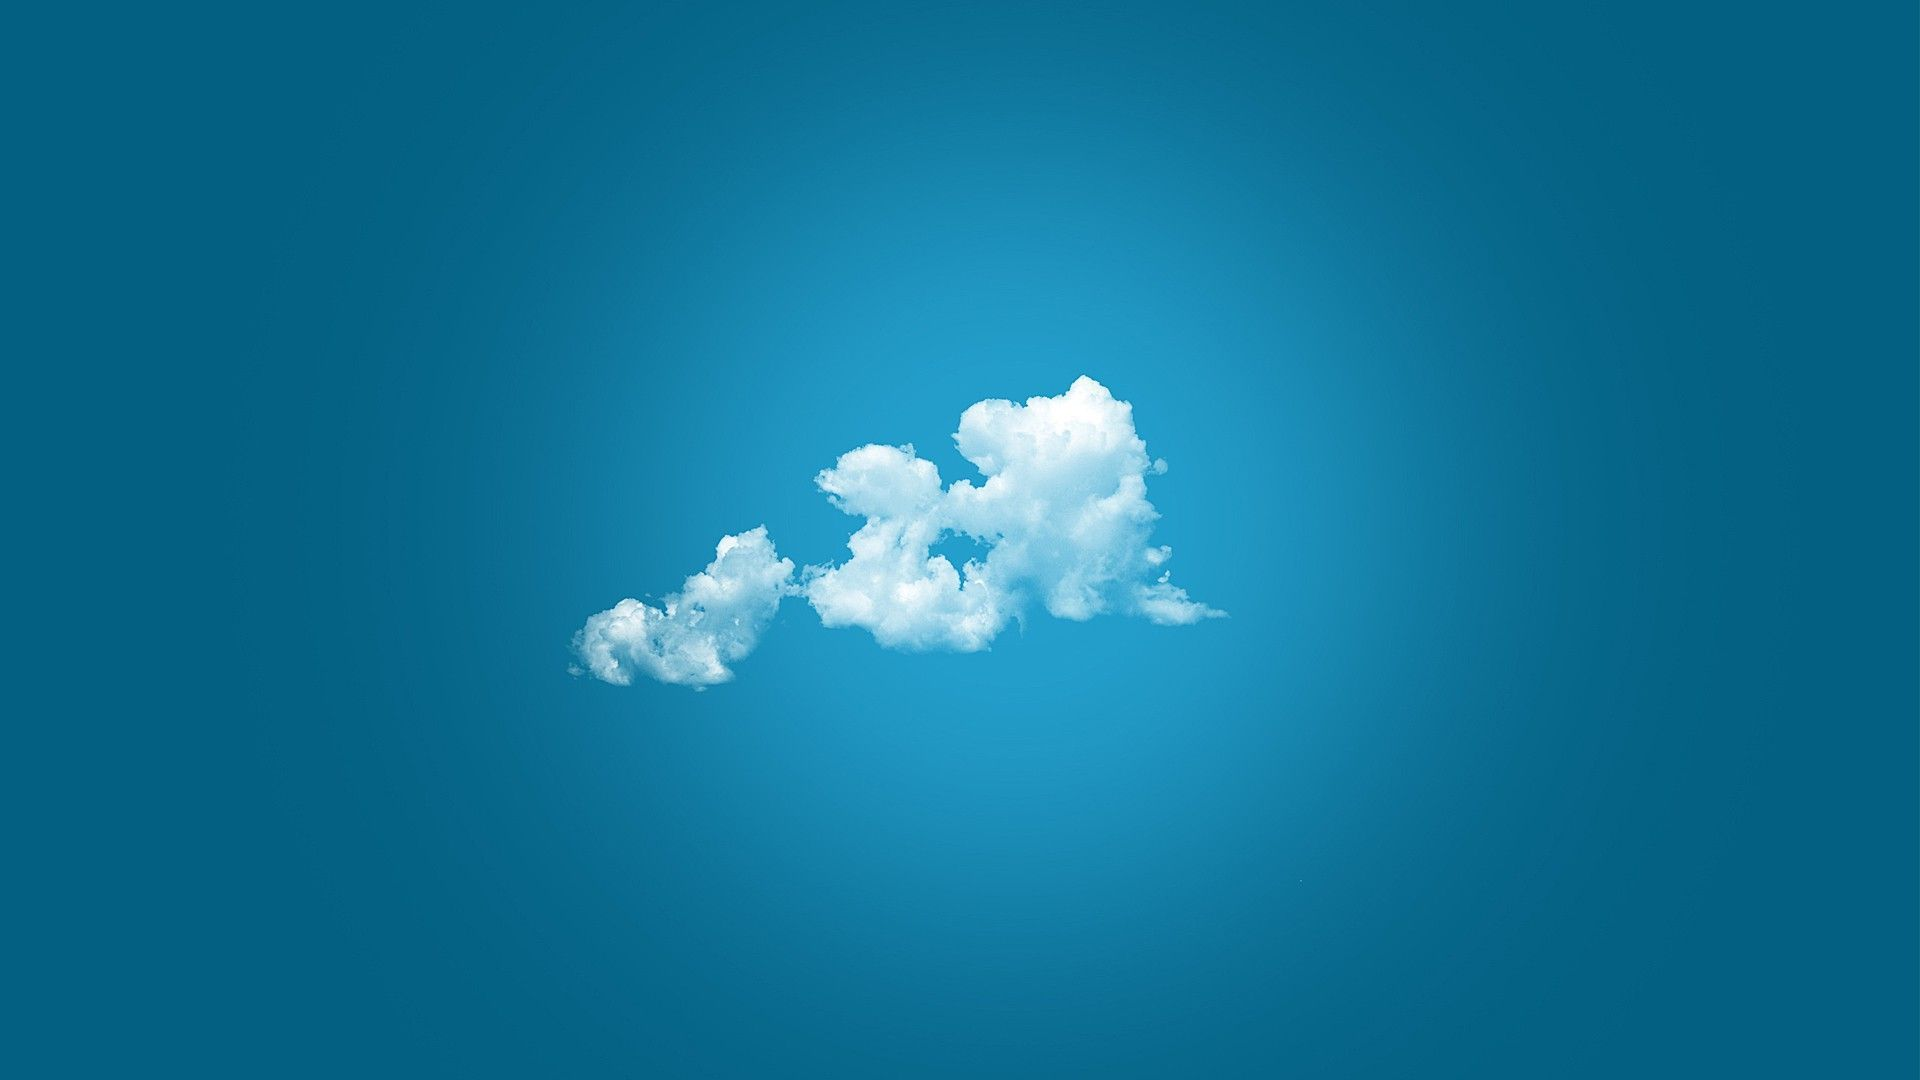 Wallpaper, Cloud (39915672)